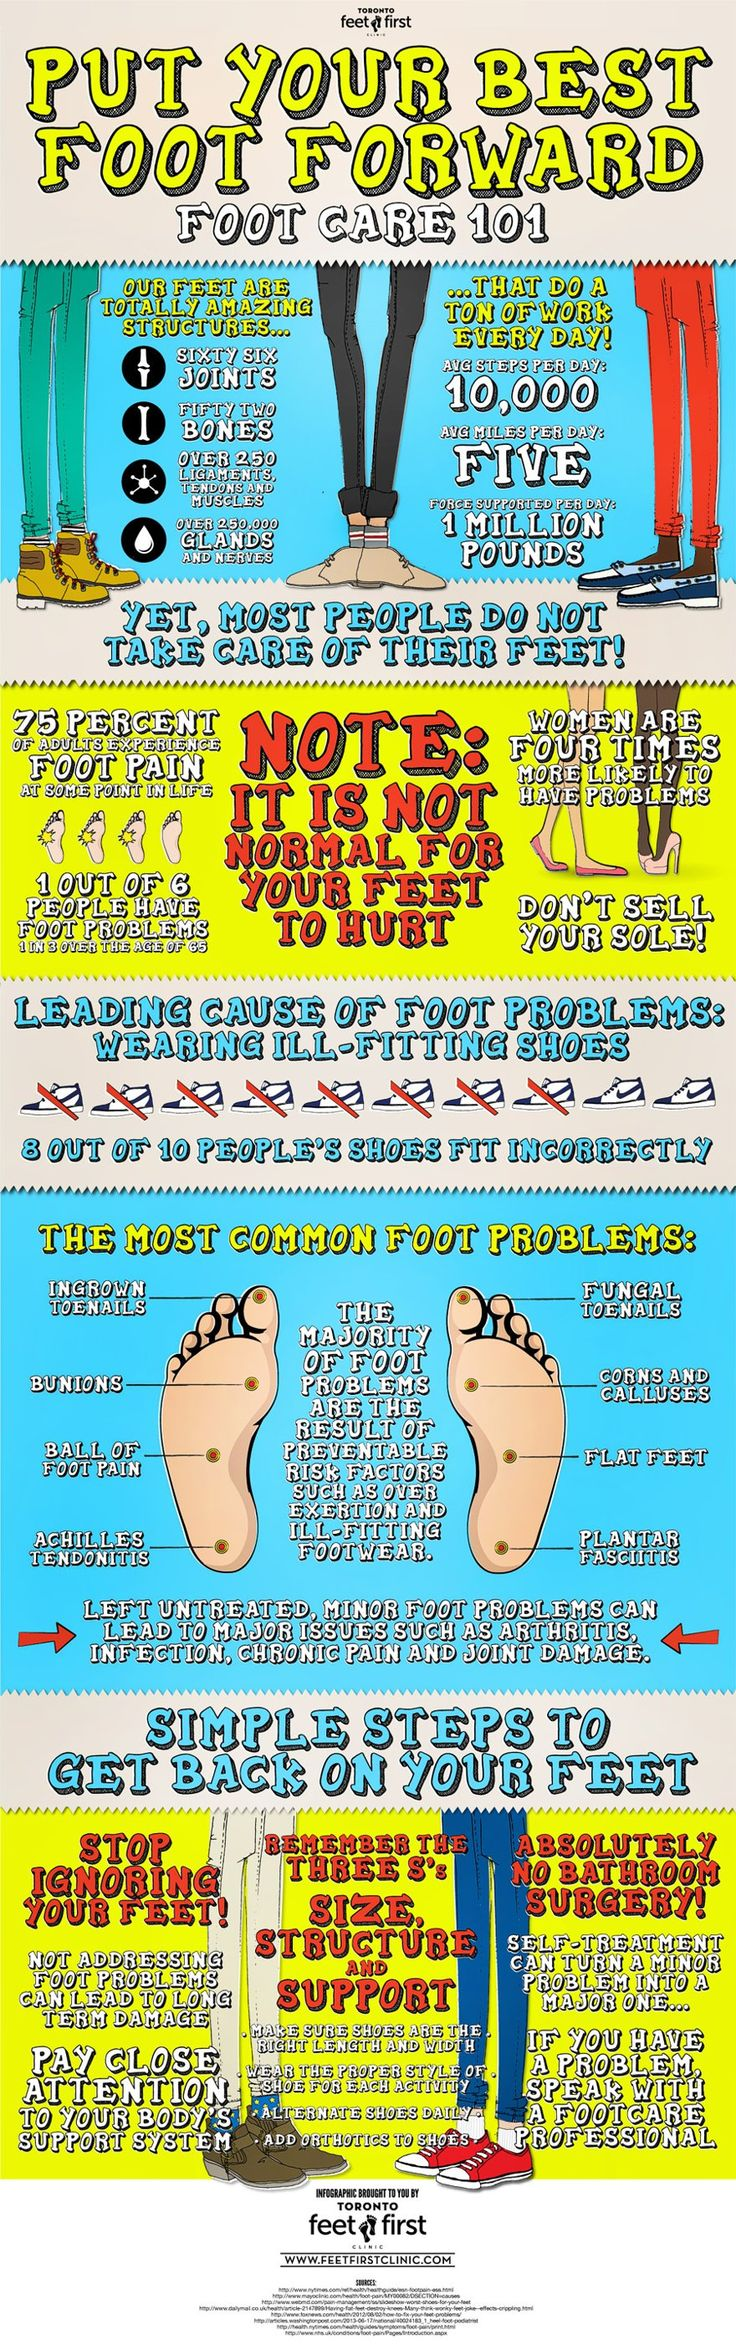 Healthy Feet Facts from Feet First Clinic in Toronto